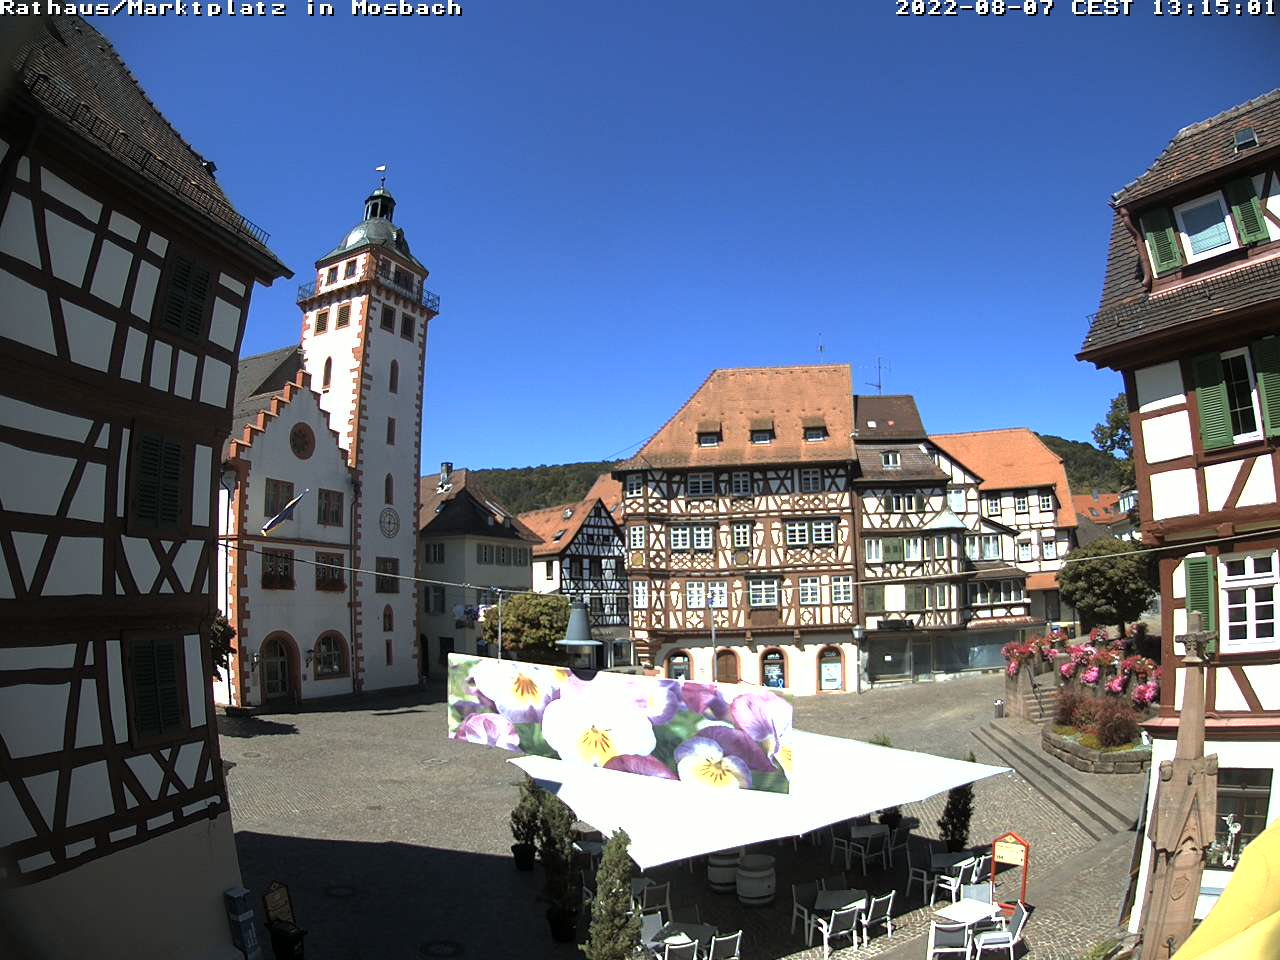 Mosbach City Center, Marktplatz